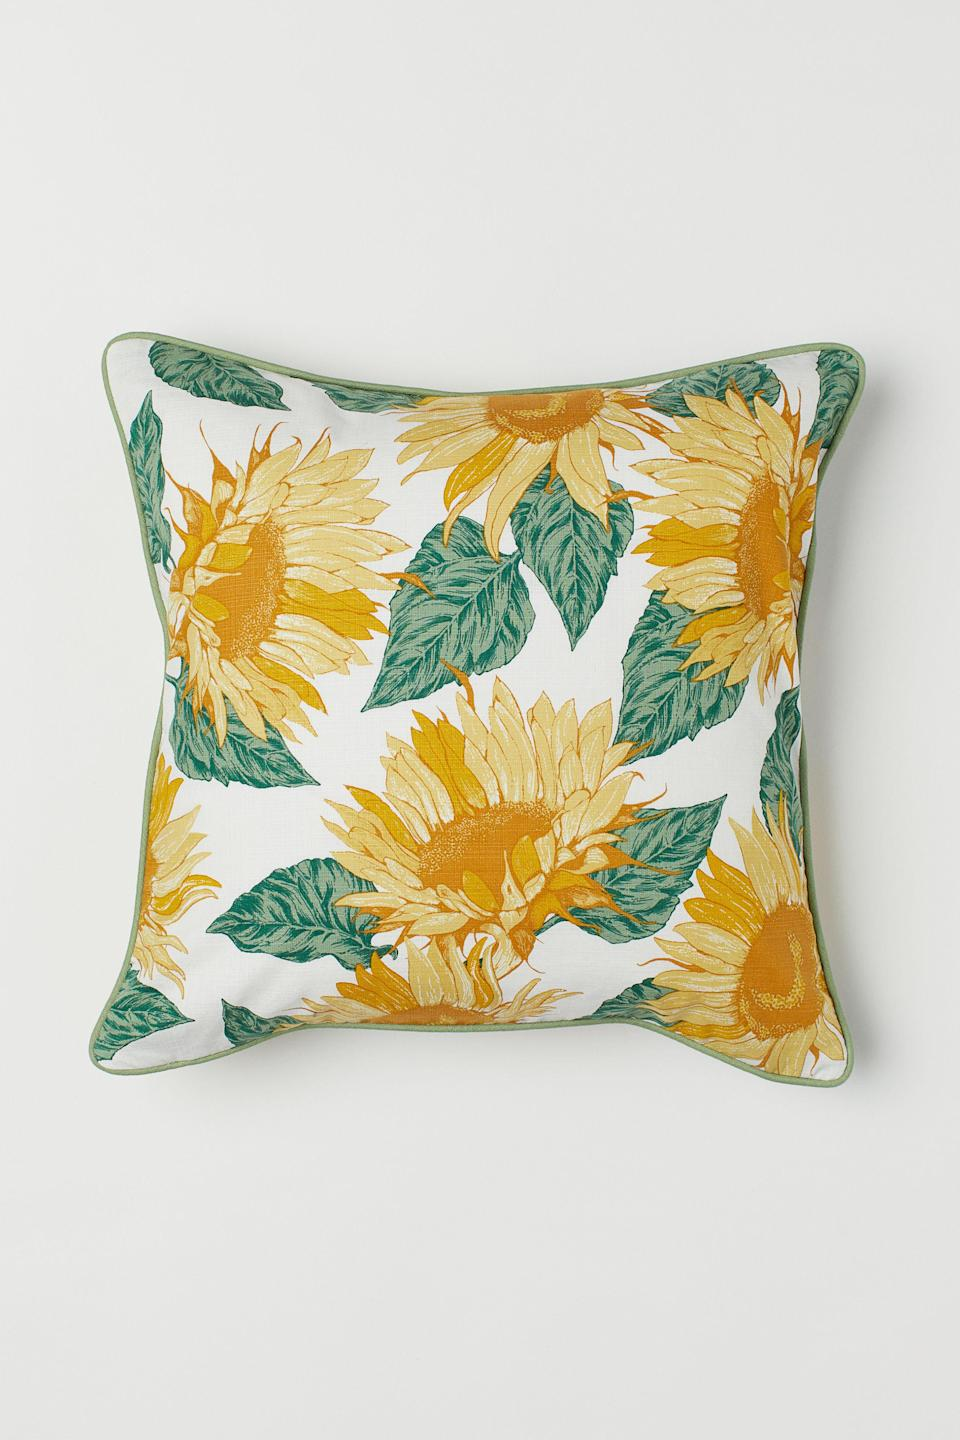 """<strong>Style Says: """"Come, Sip Lemonade In My Cottage""""</strong><br><br><br><strong>H&M</strong> Slub-Weave Cushion Cover, $, available at <a href=""""https://go.skimresources.com/?id=30283X879131&url=https%3A%2F%2Fwww2.hm.com%2Fen_us%2Fproductpage.0714404001.html"""" rel=""""nofollow noopener"""" target=""""_blank"""" data-ylk=""""slk:H&M"""" class=""""link rapid-noclick-resp"""">H&M</a><br><br><strong>Foamily</strong> Hypoallergenic Pillow Insert (20X20), $, available at <a href=""""https://www.amazon.com/Foamily-Premium-Hypoallergenic-Polyester-Standard/dp/B0106UAM3I/ref=sr_1_3"""" rel=""""nofollow noopener"""" target=""""_blank"""" data-ylk=""""slk:Amazon"""" class=""""link rapid-noclick-resp"""">Amazon</a>"""